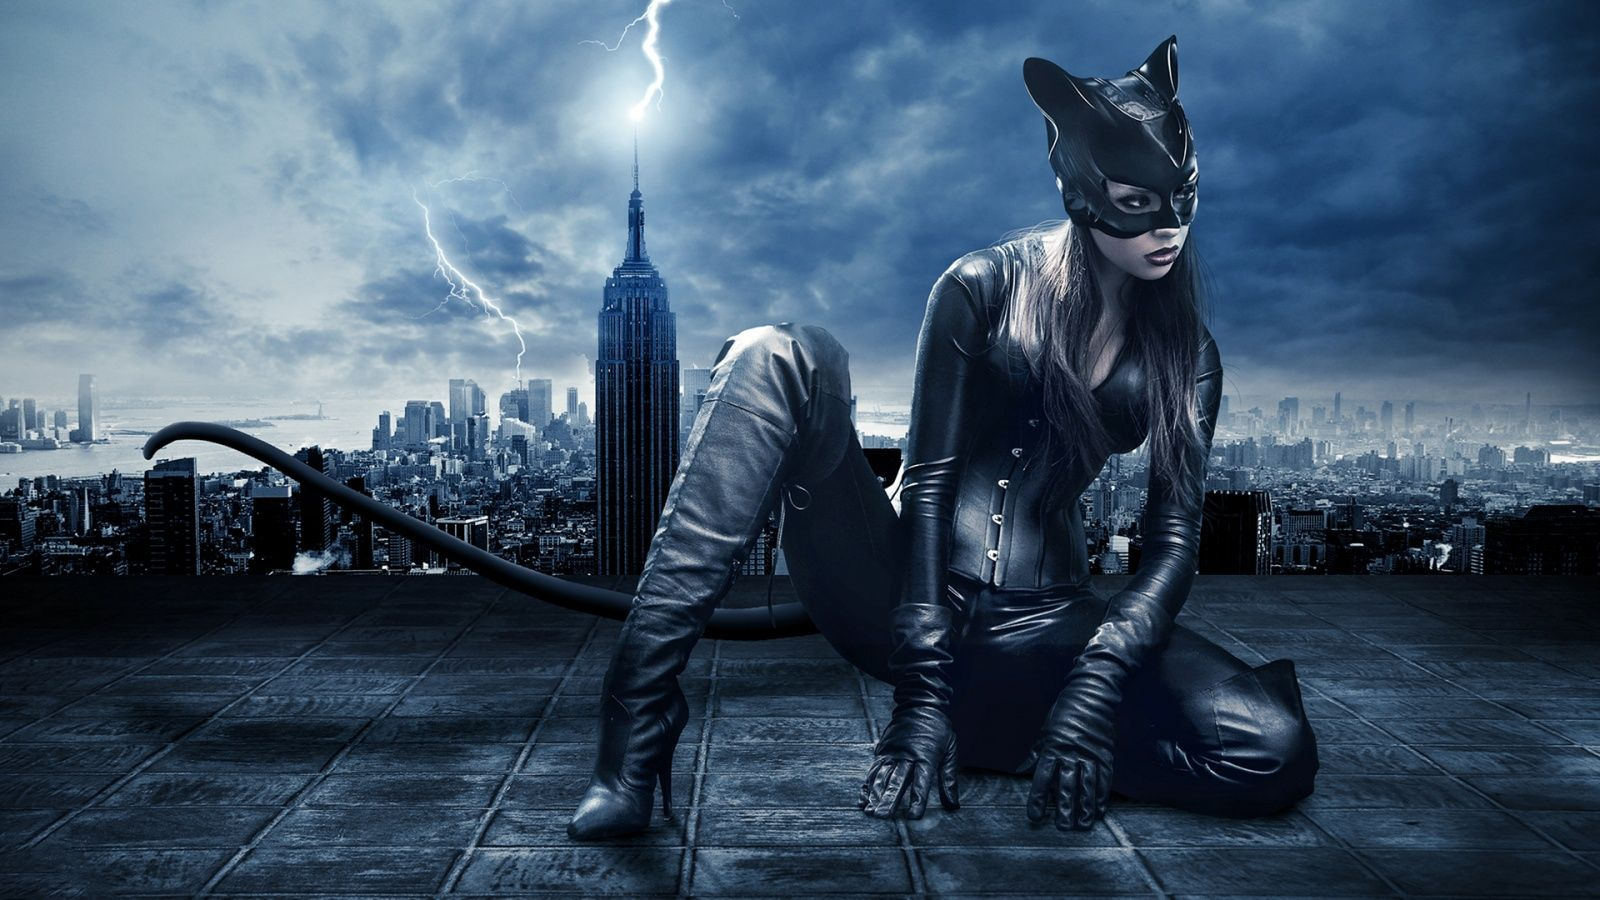 Catwoman HD Wallpapers | ~I'm CATWOMAN! Hear me roar~ | Pinterest | Catwoman, Catwoman cosplay ...